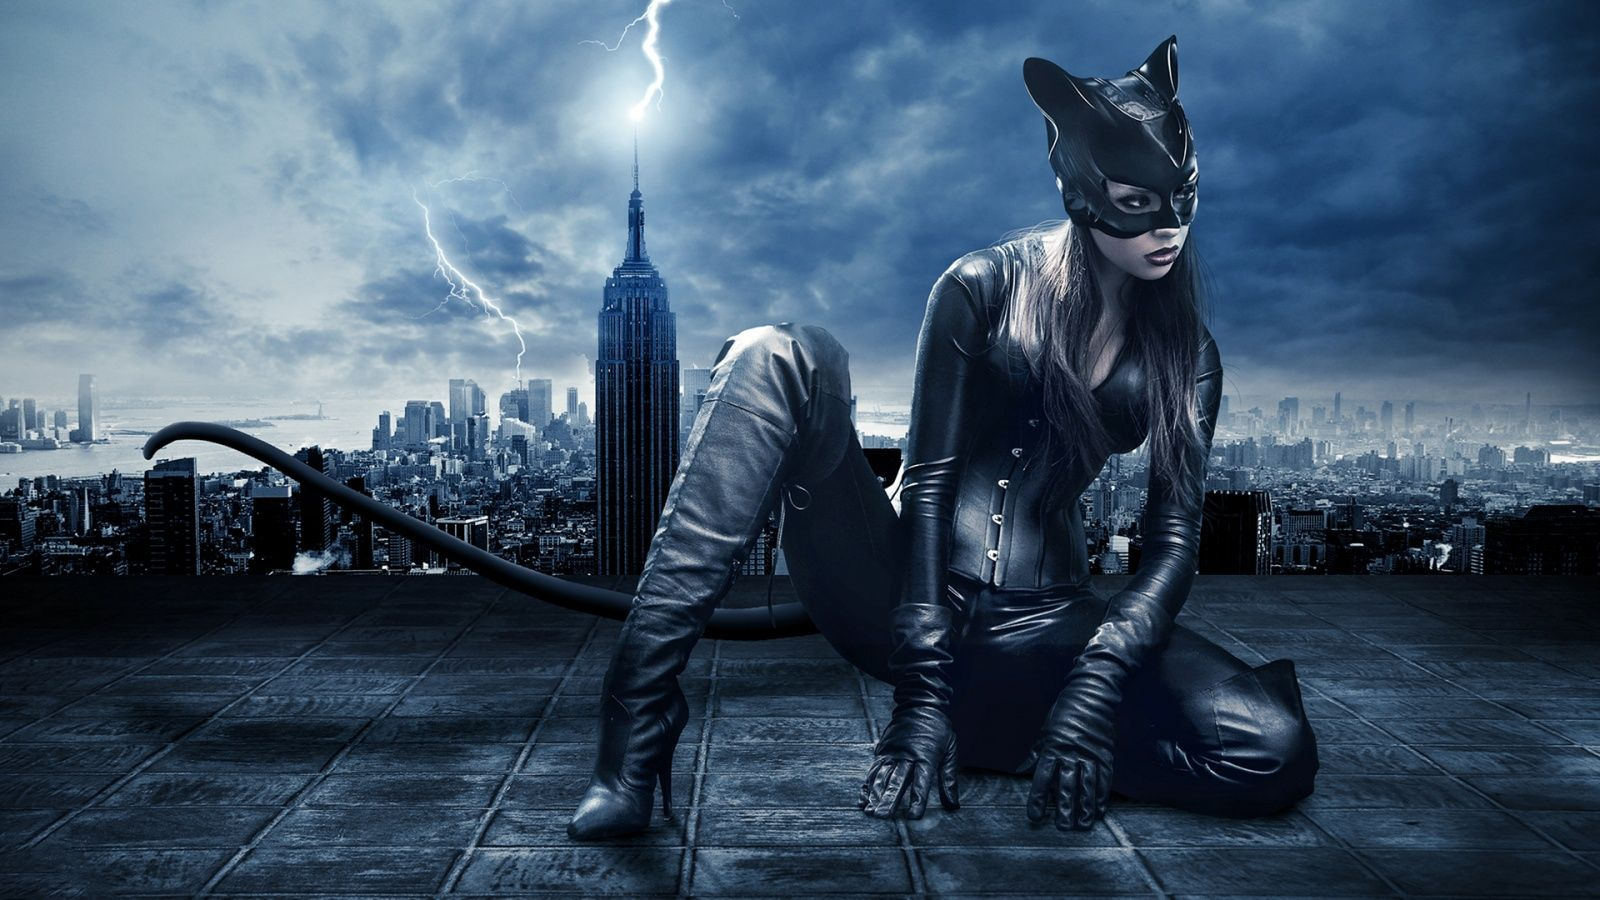 Catwoman HD Wallpapers | ~I'm CATWOMAN! Hear me roar~ | Pinterest | Catwoman, Catwoman cosplay ...